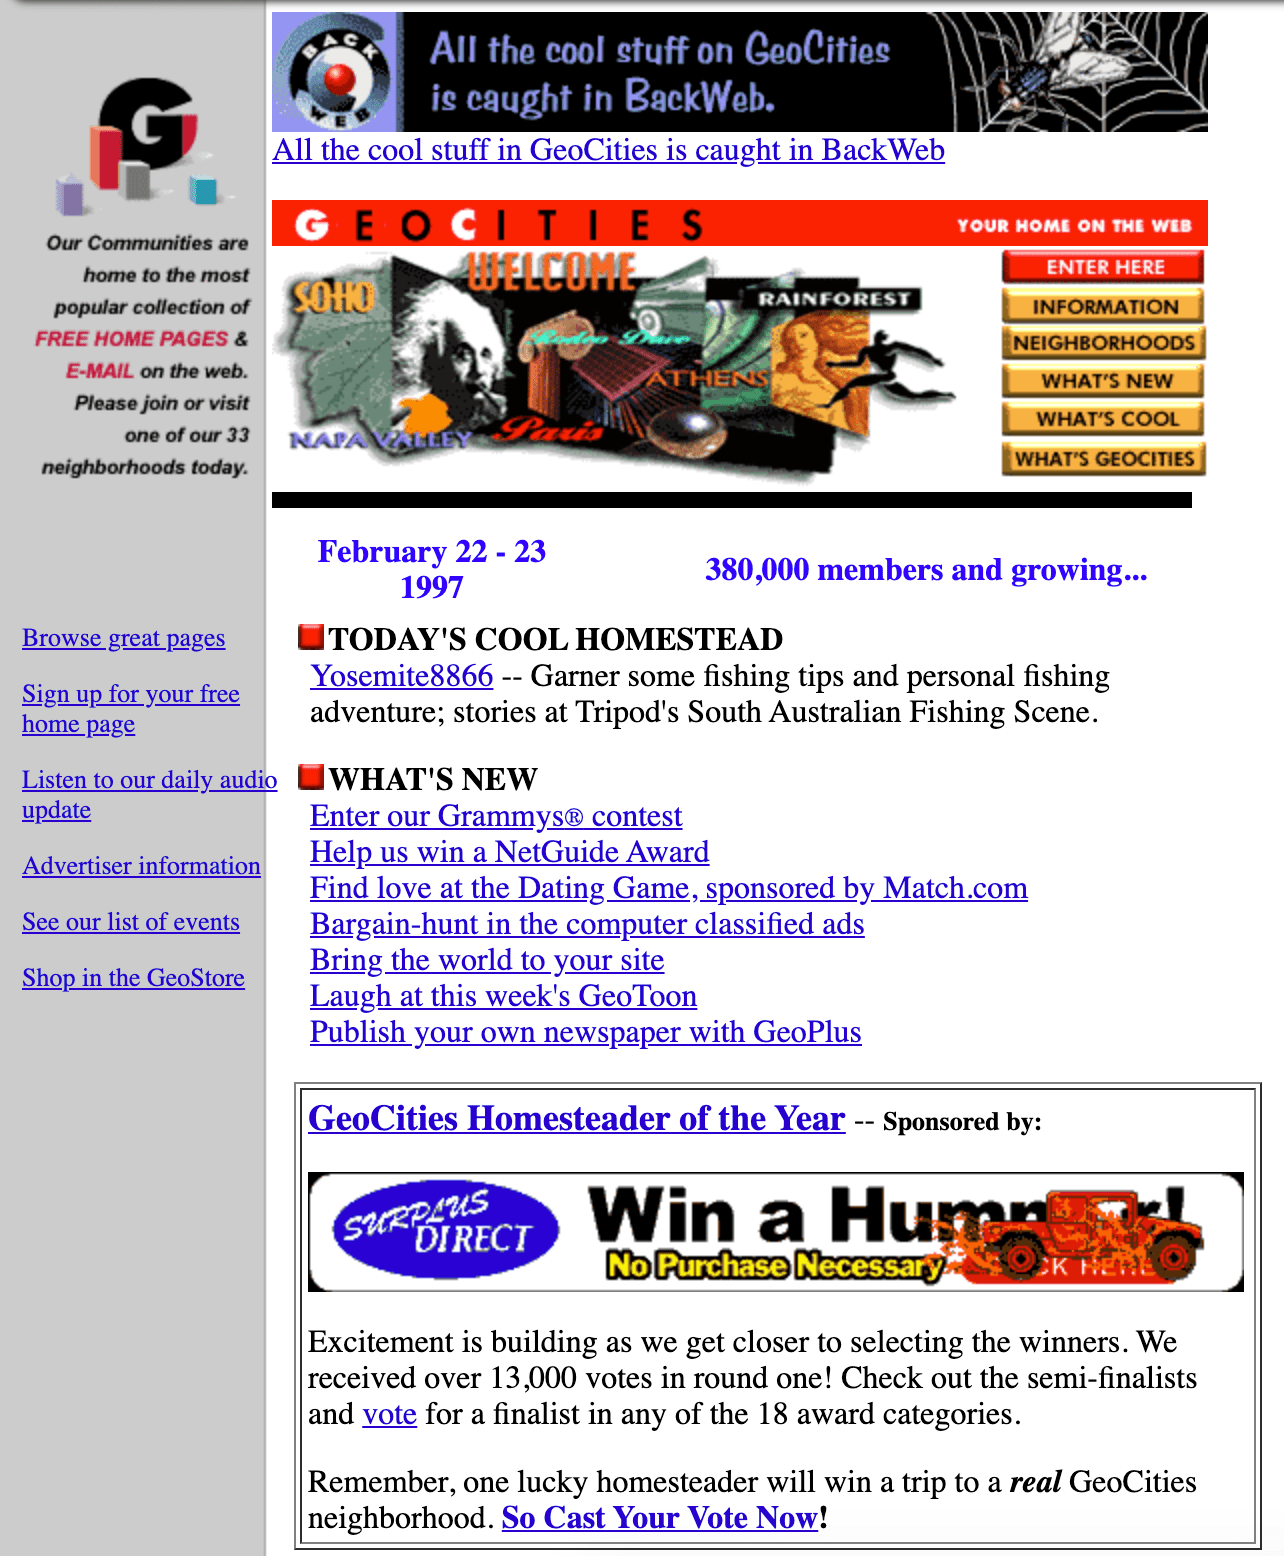 Geocities was an early web based user-generated content community